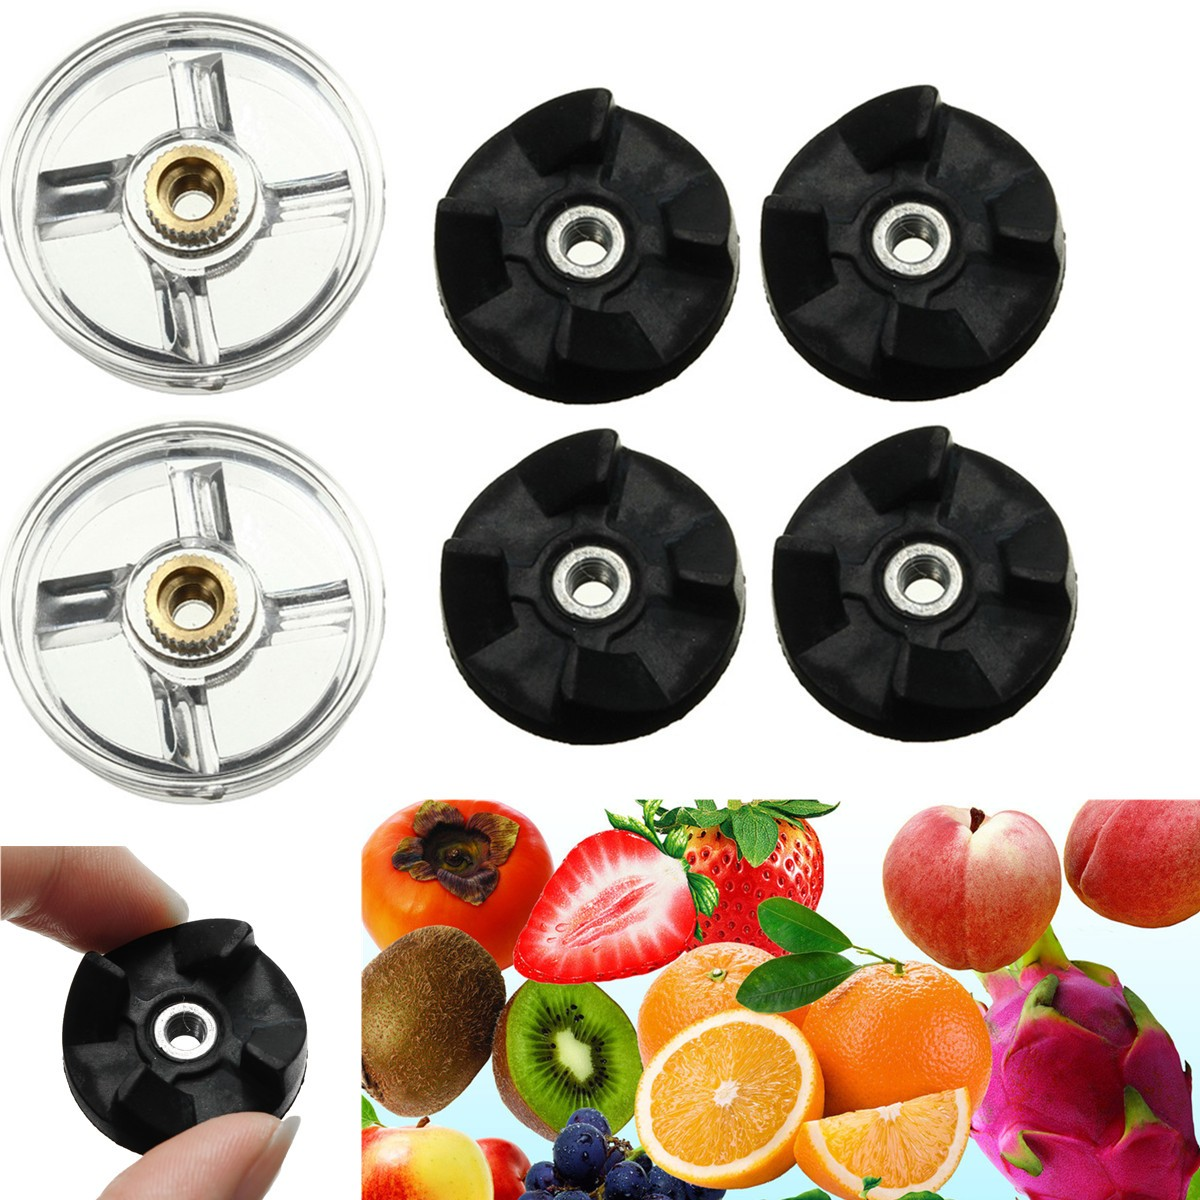 Replacement 2 Plastic Gear Base 4 Rubber Gear Blender Juicer Parts For Magic Bullet Spare Parts 6 replacement spare parts blender juicer parts 3 rubber gear 3 plastic gear base for magic bullet 900w 38